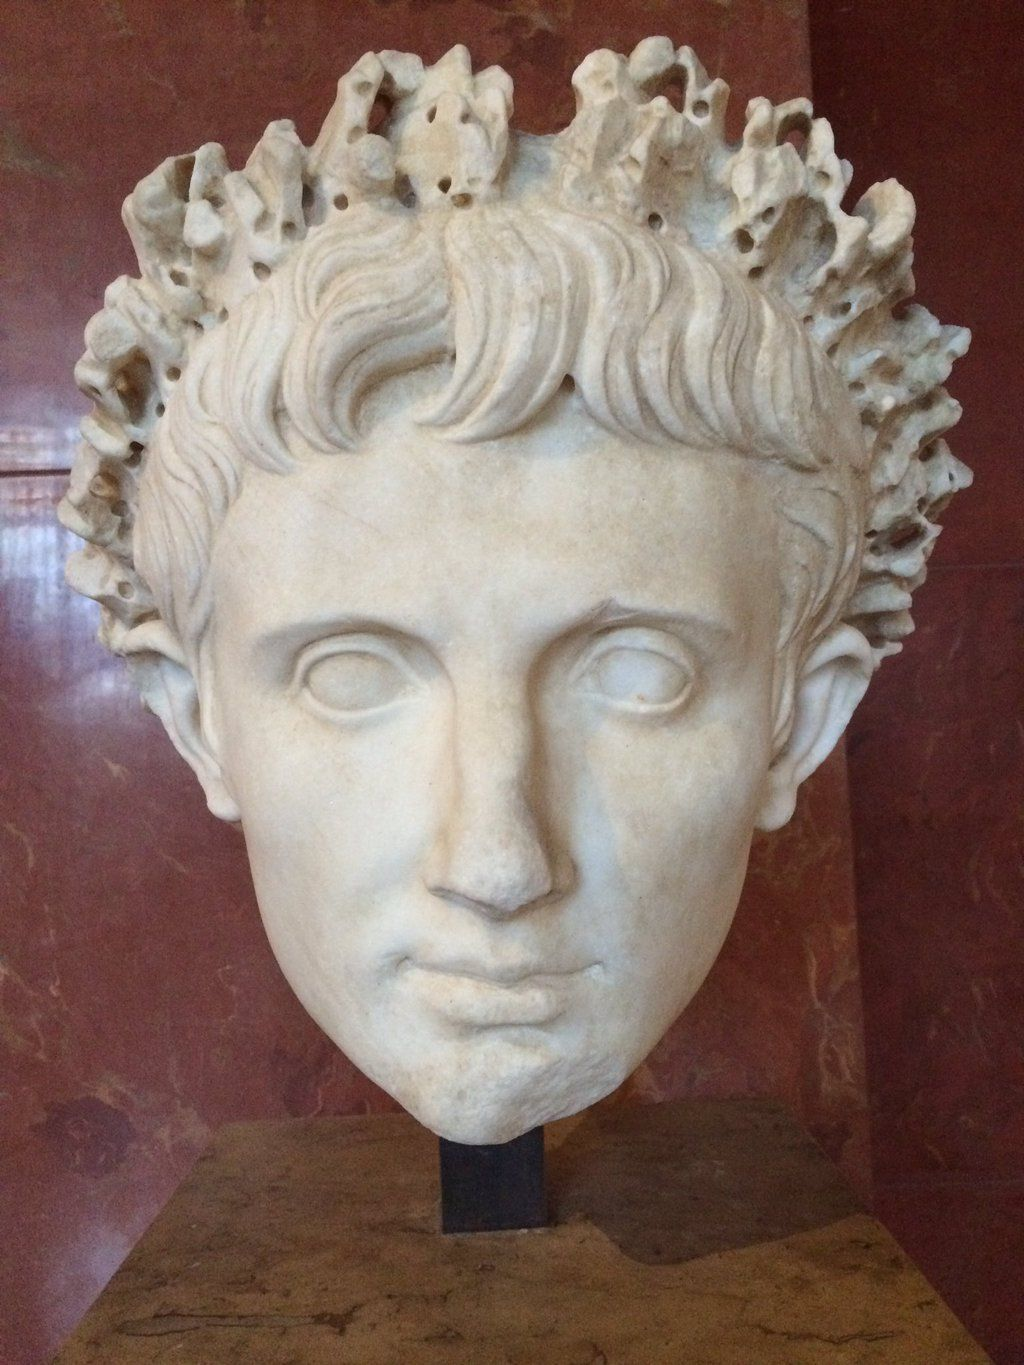 """Divus Augustus on Twitter: """"At the @MuseeLouvre - time to see how memorials of me look. https://t.co/K7nmRk8fQ1"""""""